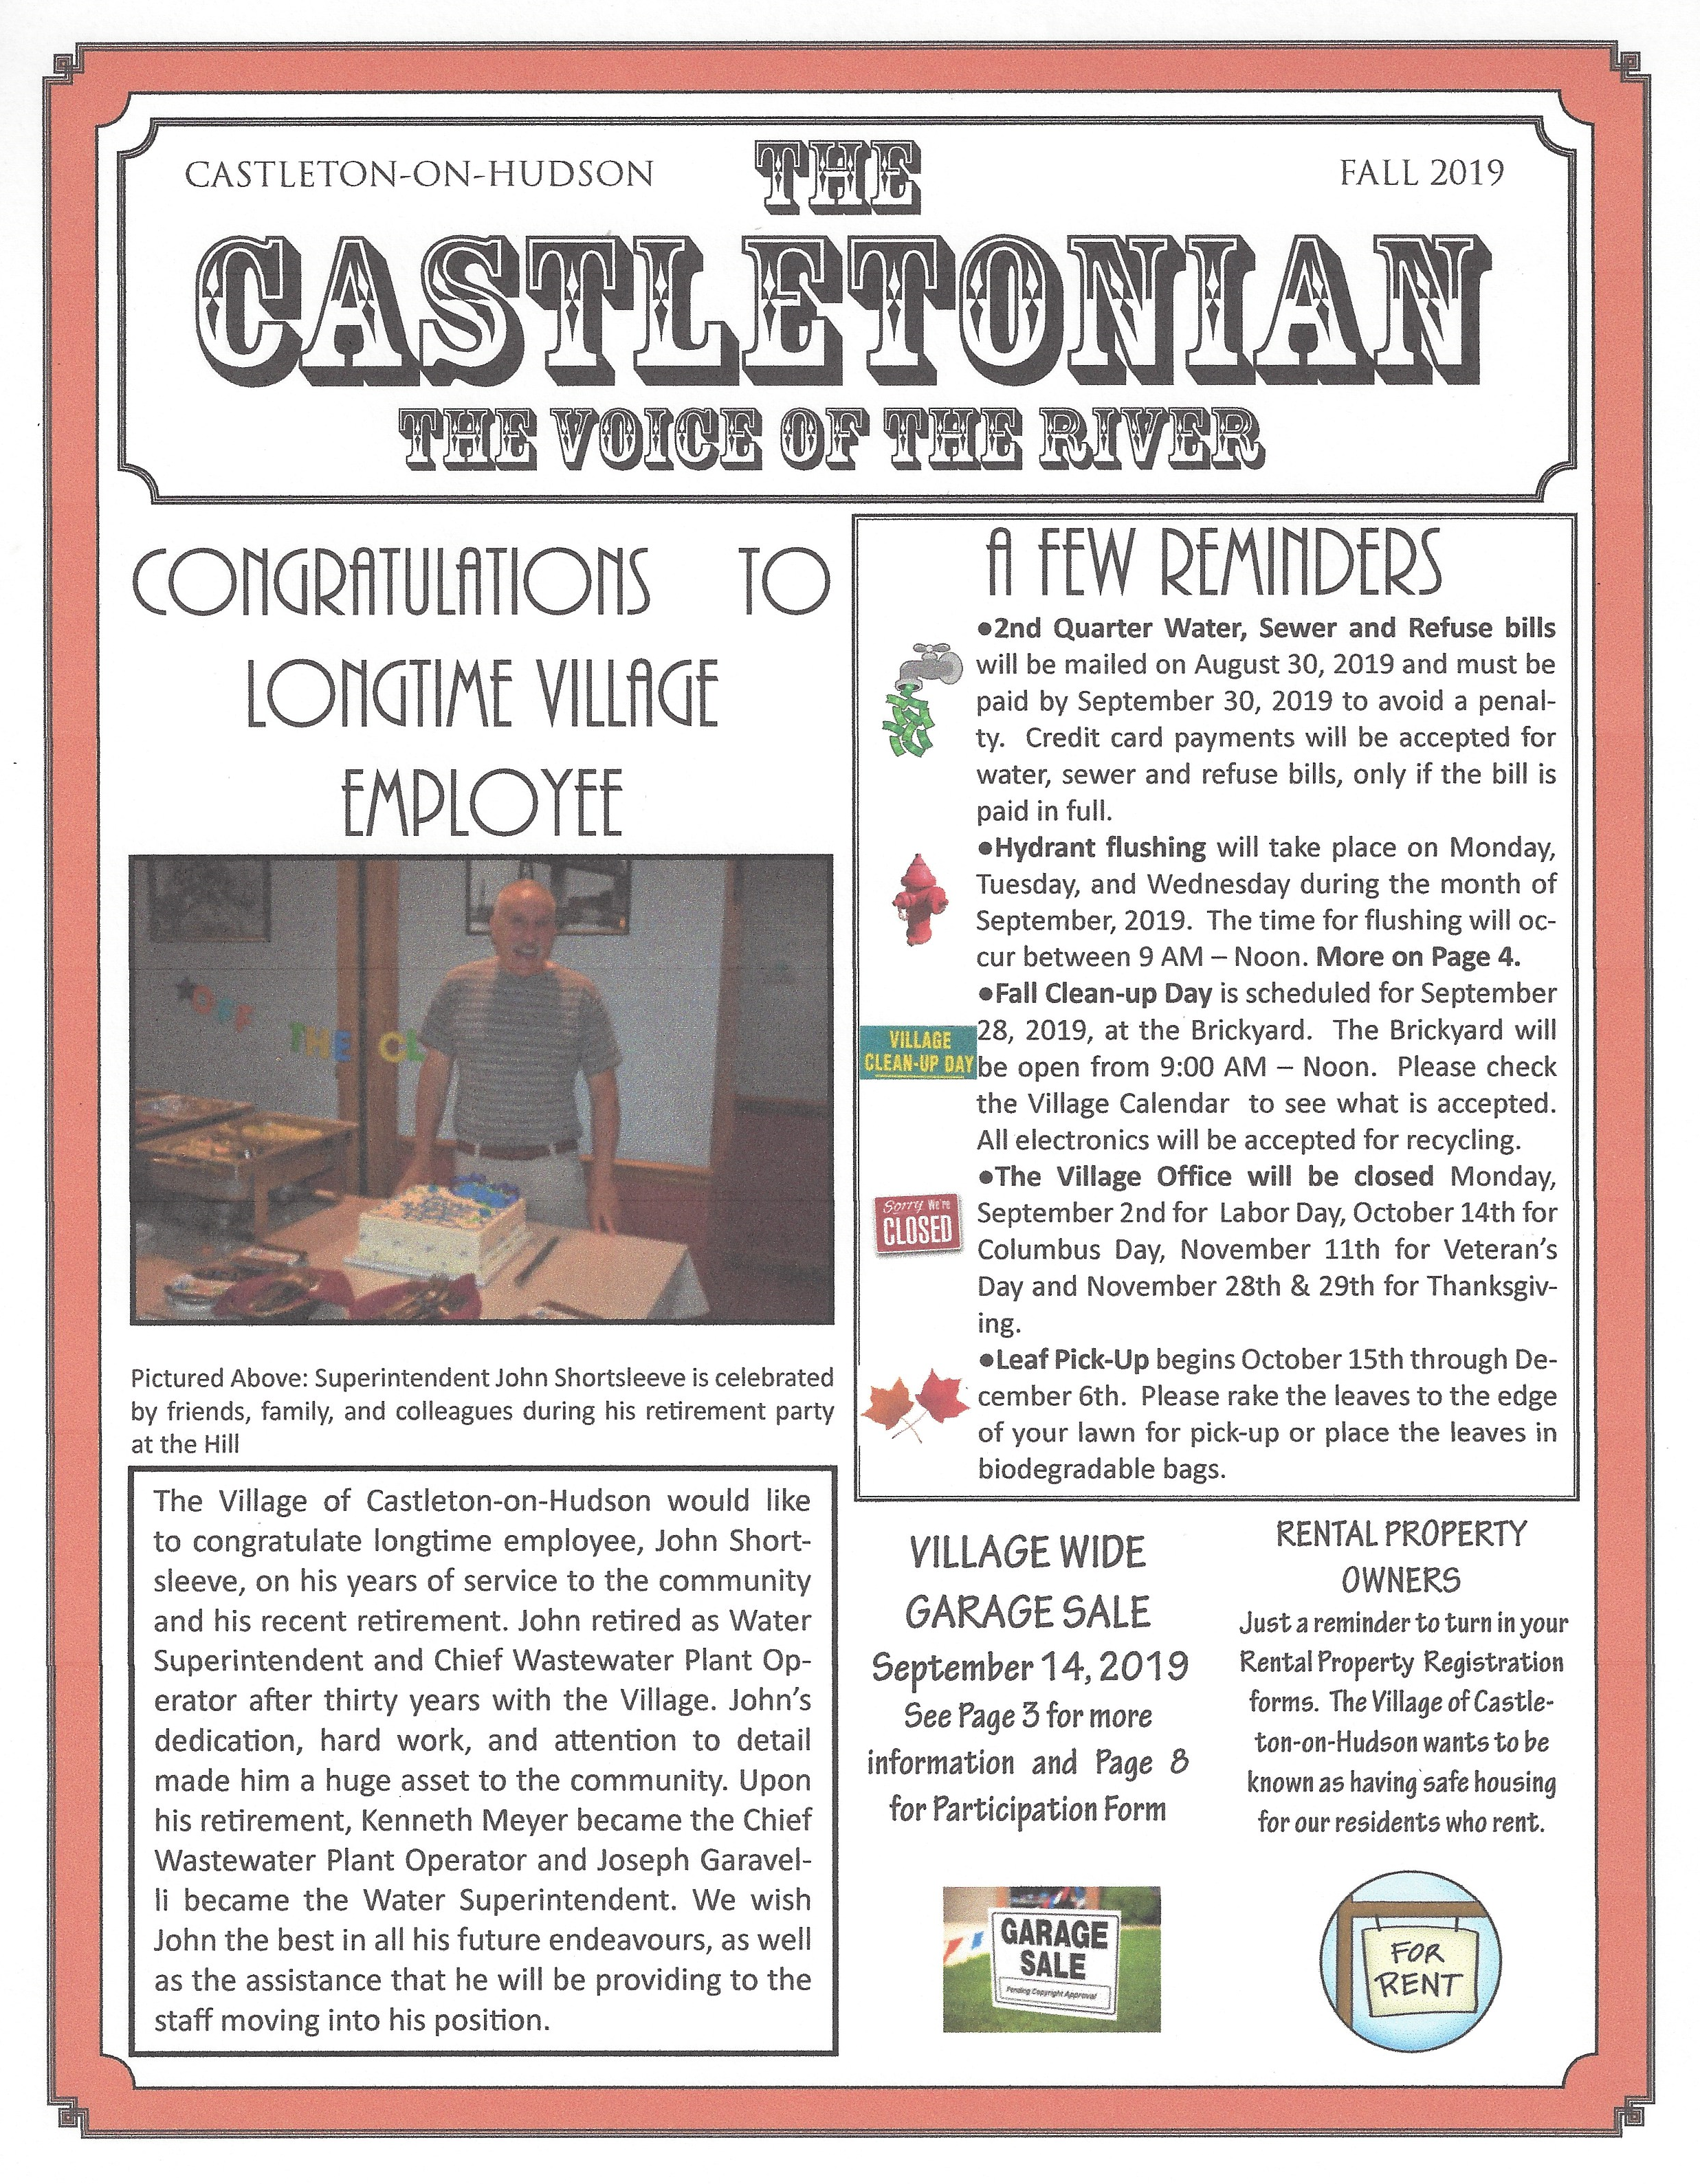 The Castletonian Fall 2019